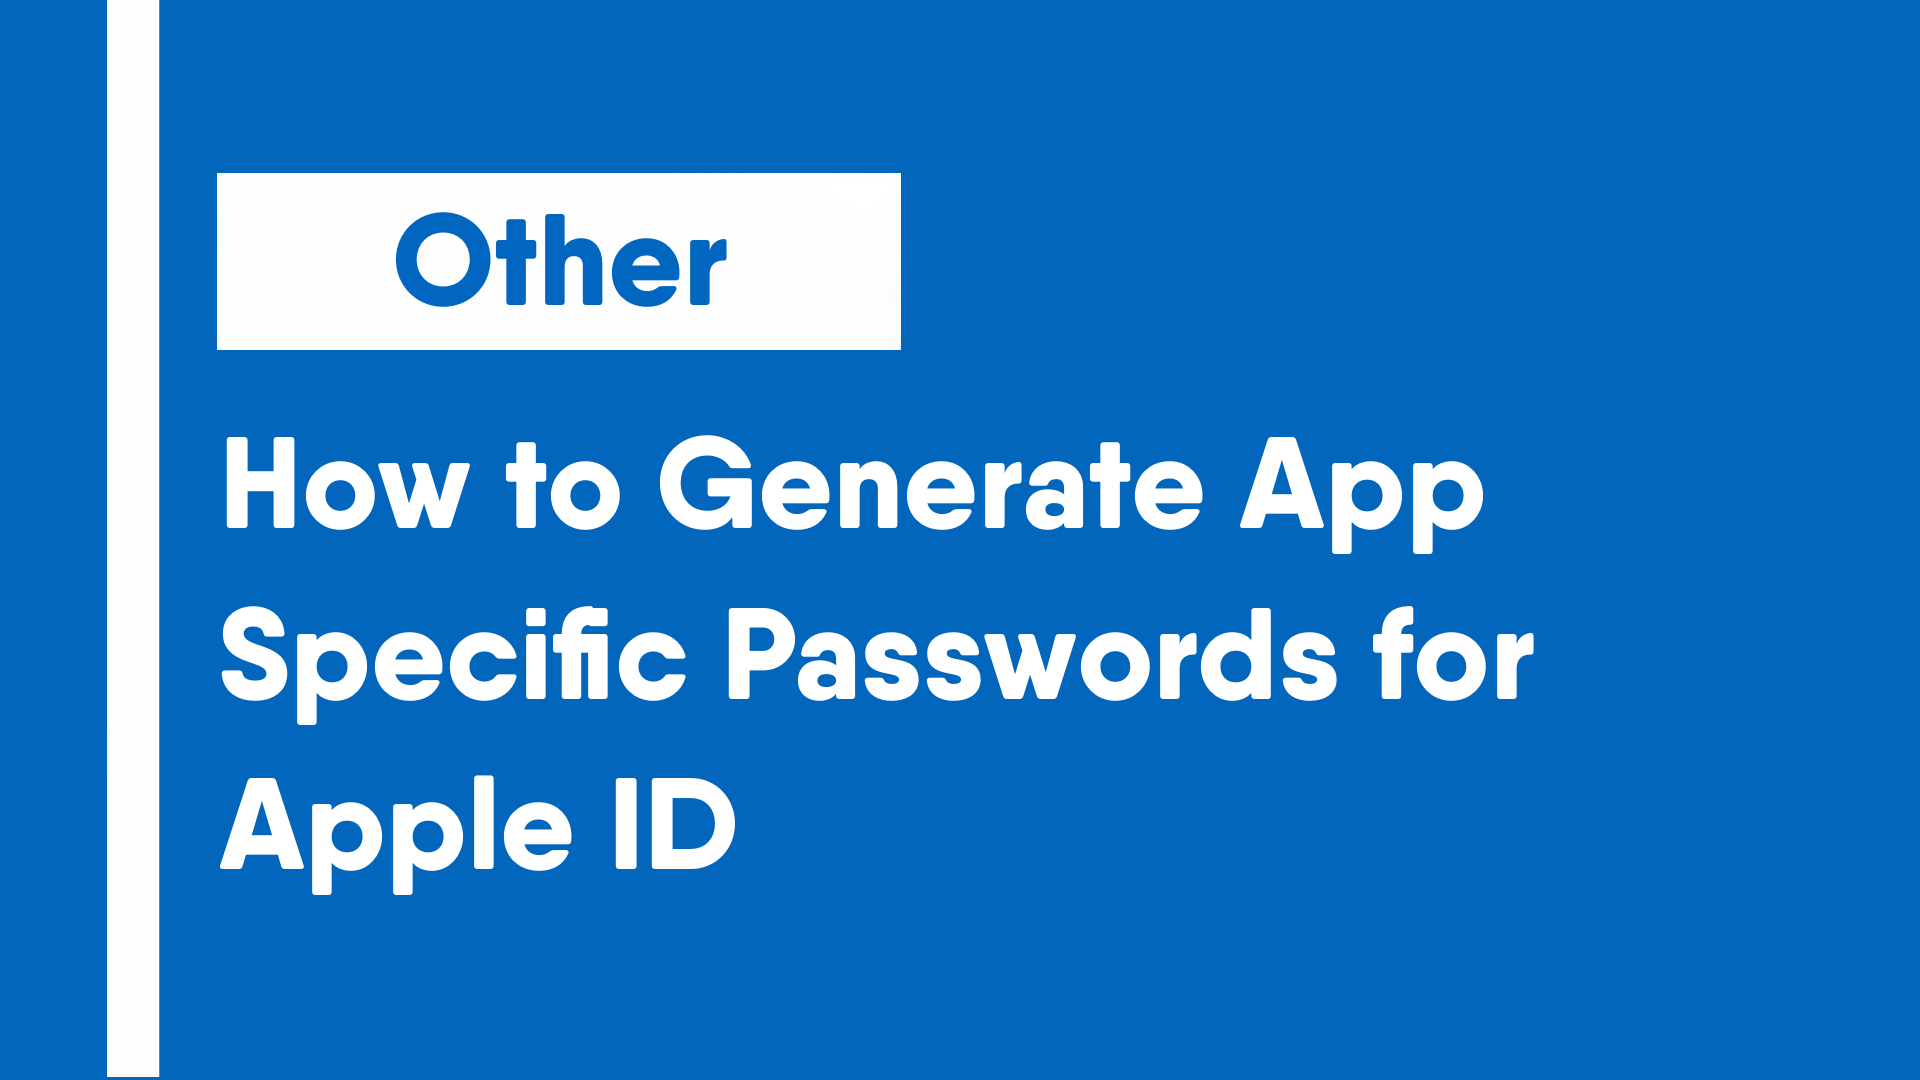 How to Generate App Specific Passwords for Apple ID